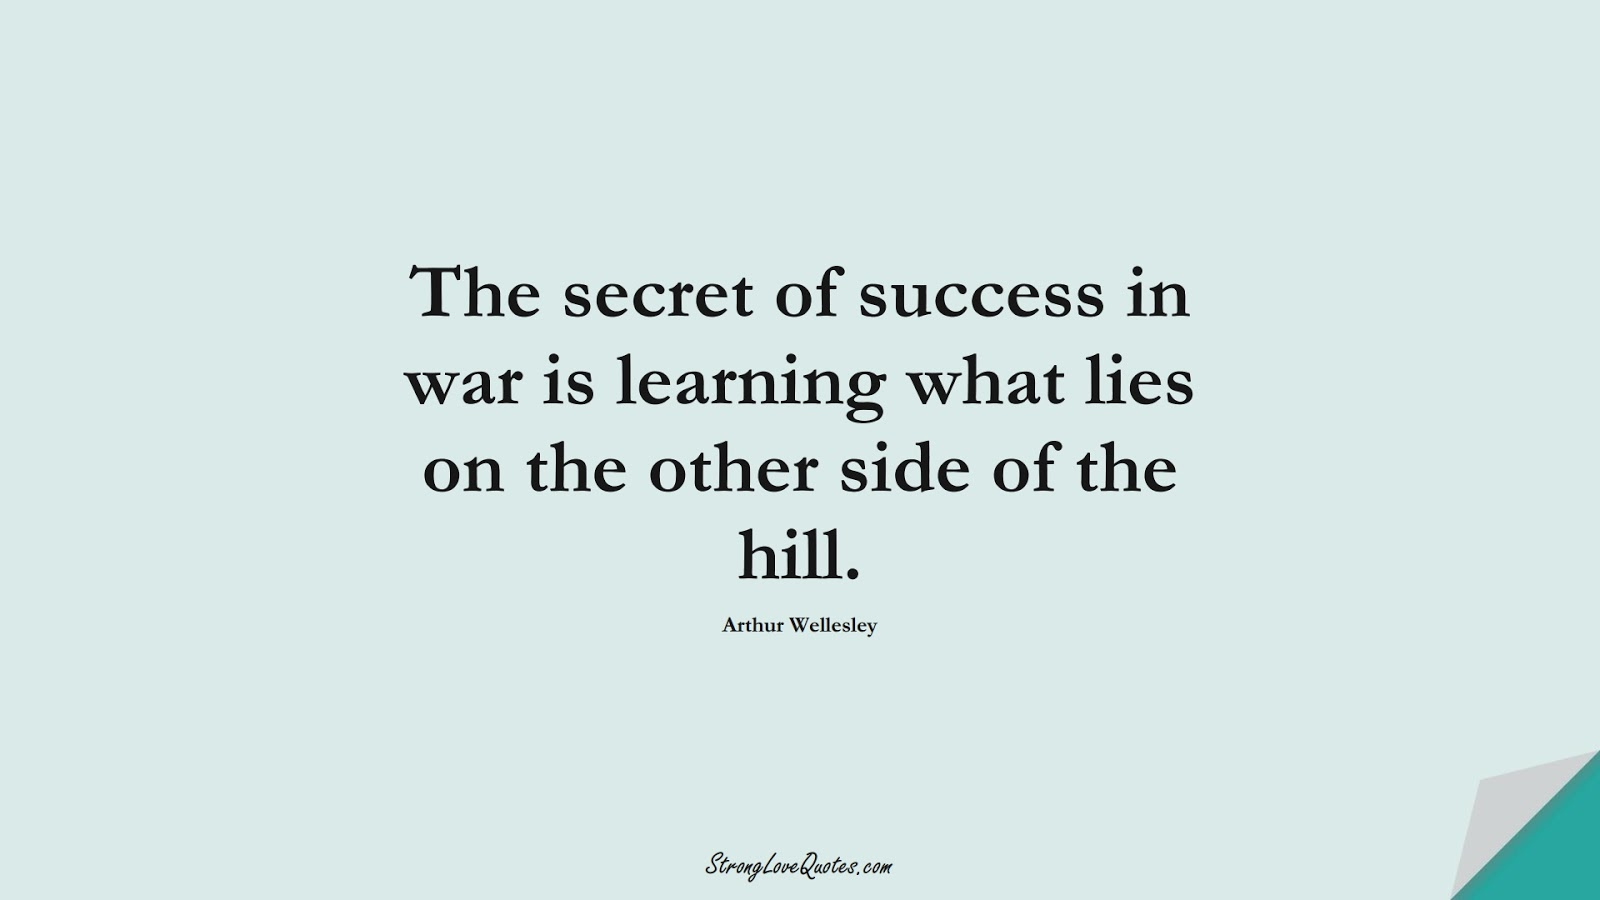 The secret of success in war is learning what lies on the other side of the hill. (Arthur Wellesley);  #LearningQuotes